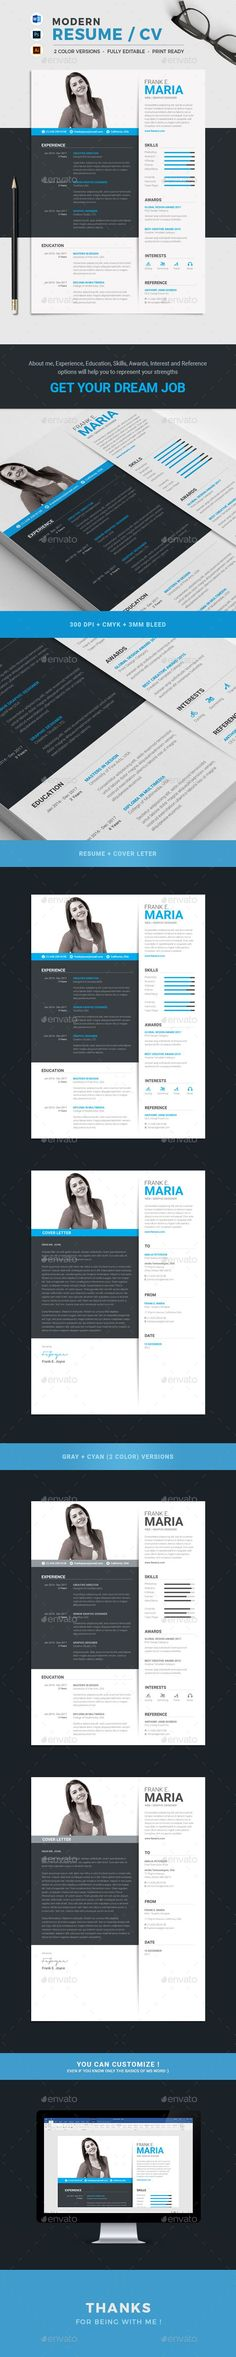 This Modern, Clean and Minimal Resume with strong typographic structure is very easy to use and customize. This resume is very well organized and labeled for you to get the best result in the minimum possible time. Statement, Experience, Education, Skills, Award, Interests and Reference included in this Resume template which will be helpful for you to express your strengths and to get your dream job.